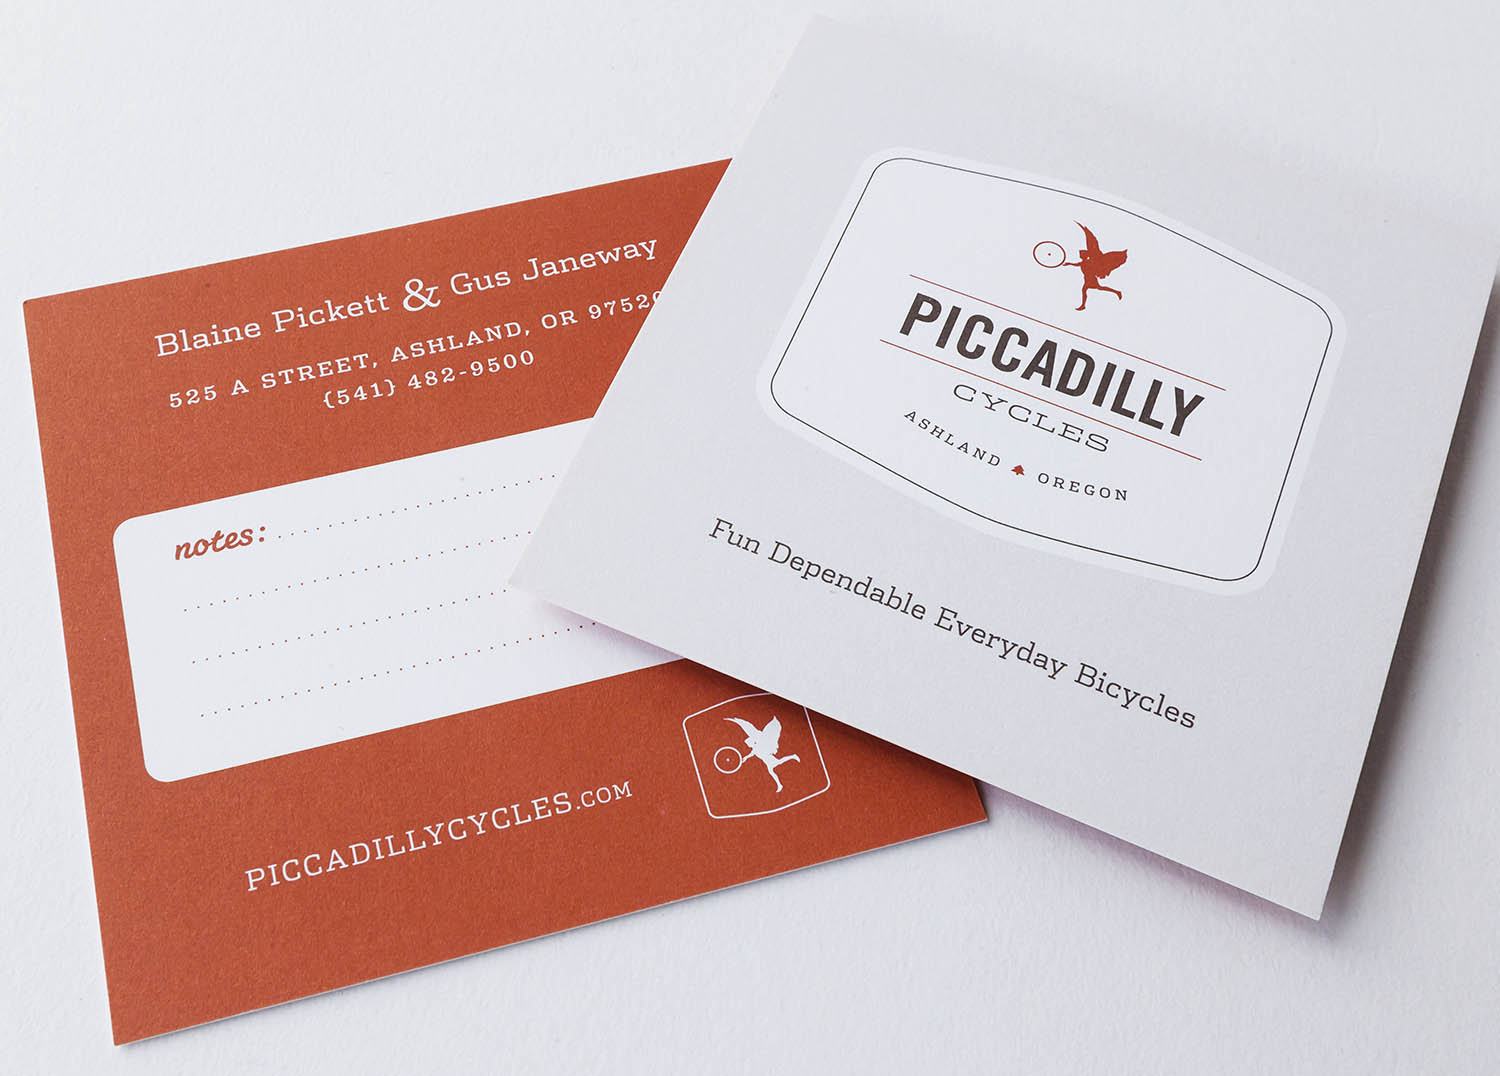 piccadilly_cycles_card_1500x1076.jpg